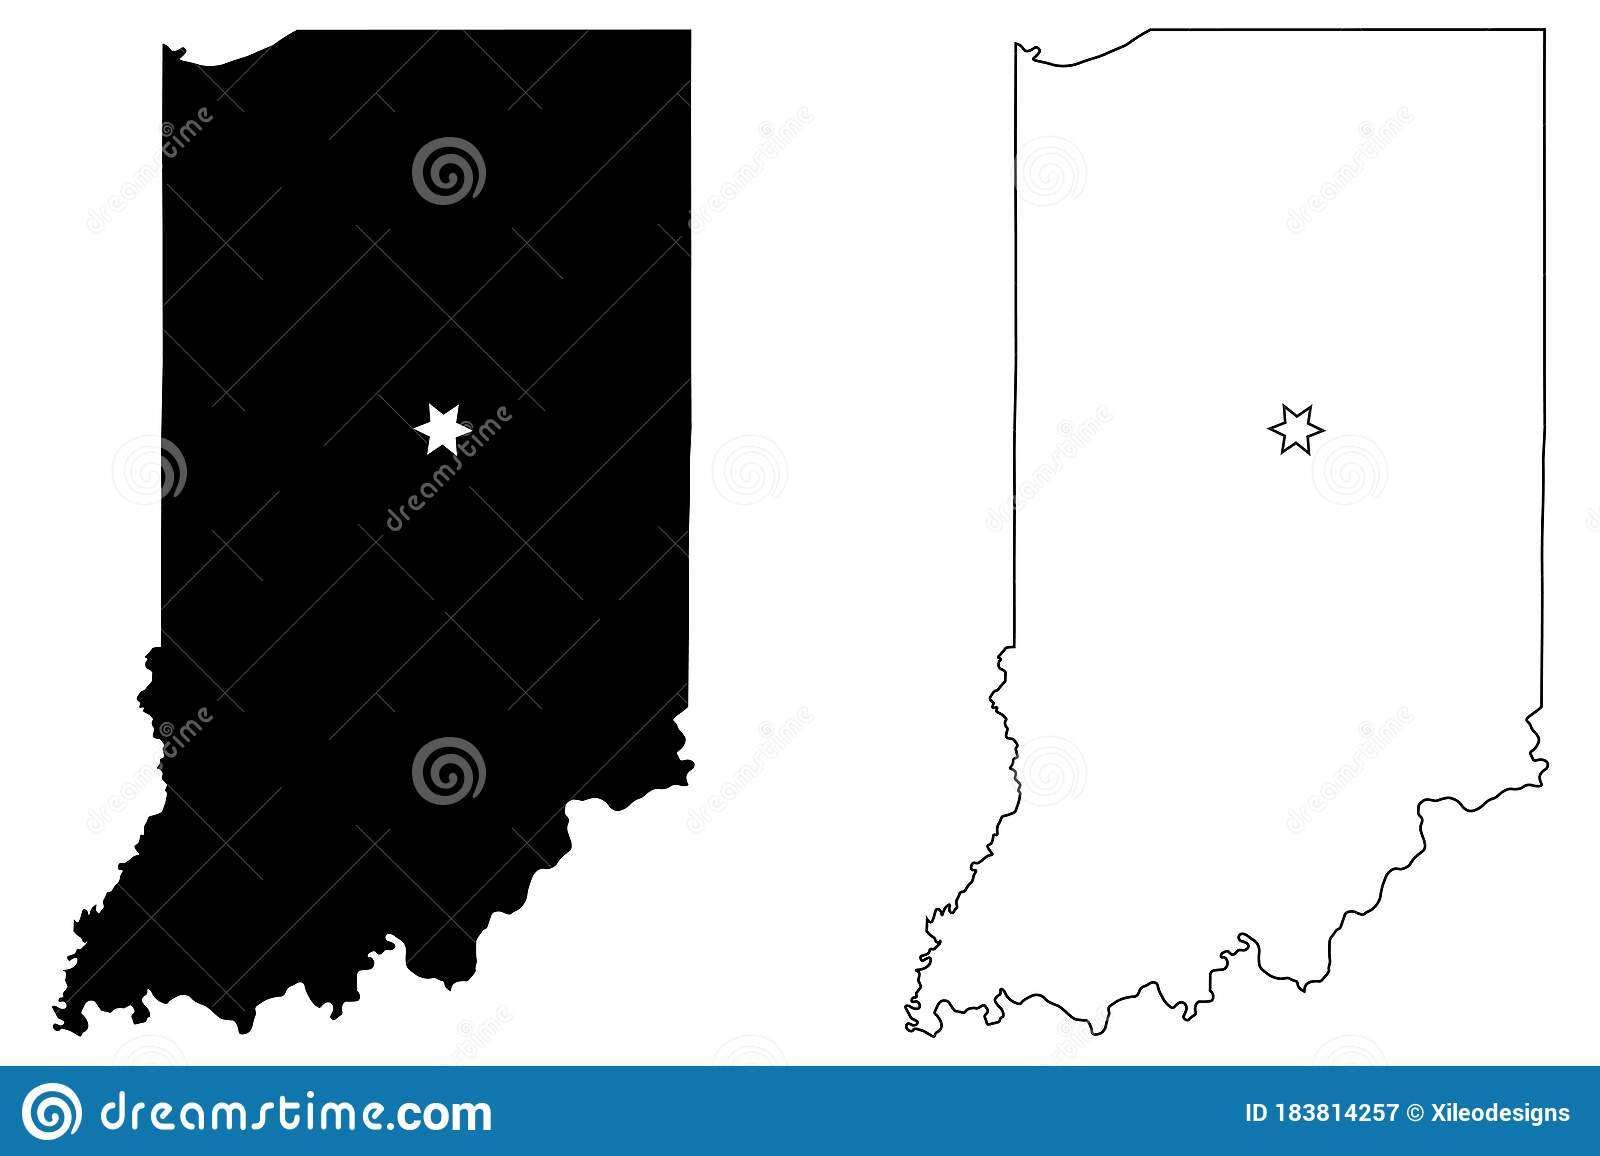 Indiana In State Maps Usa With Capital City Star At